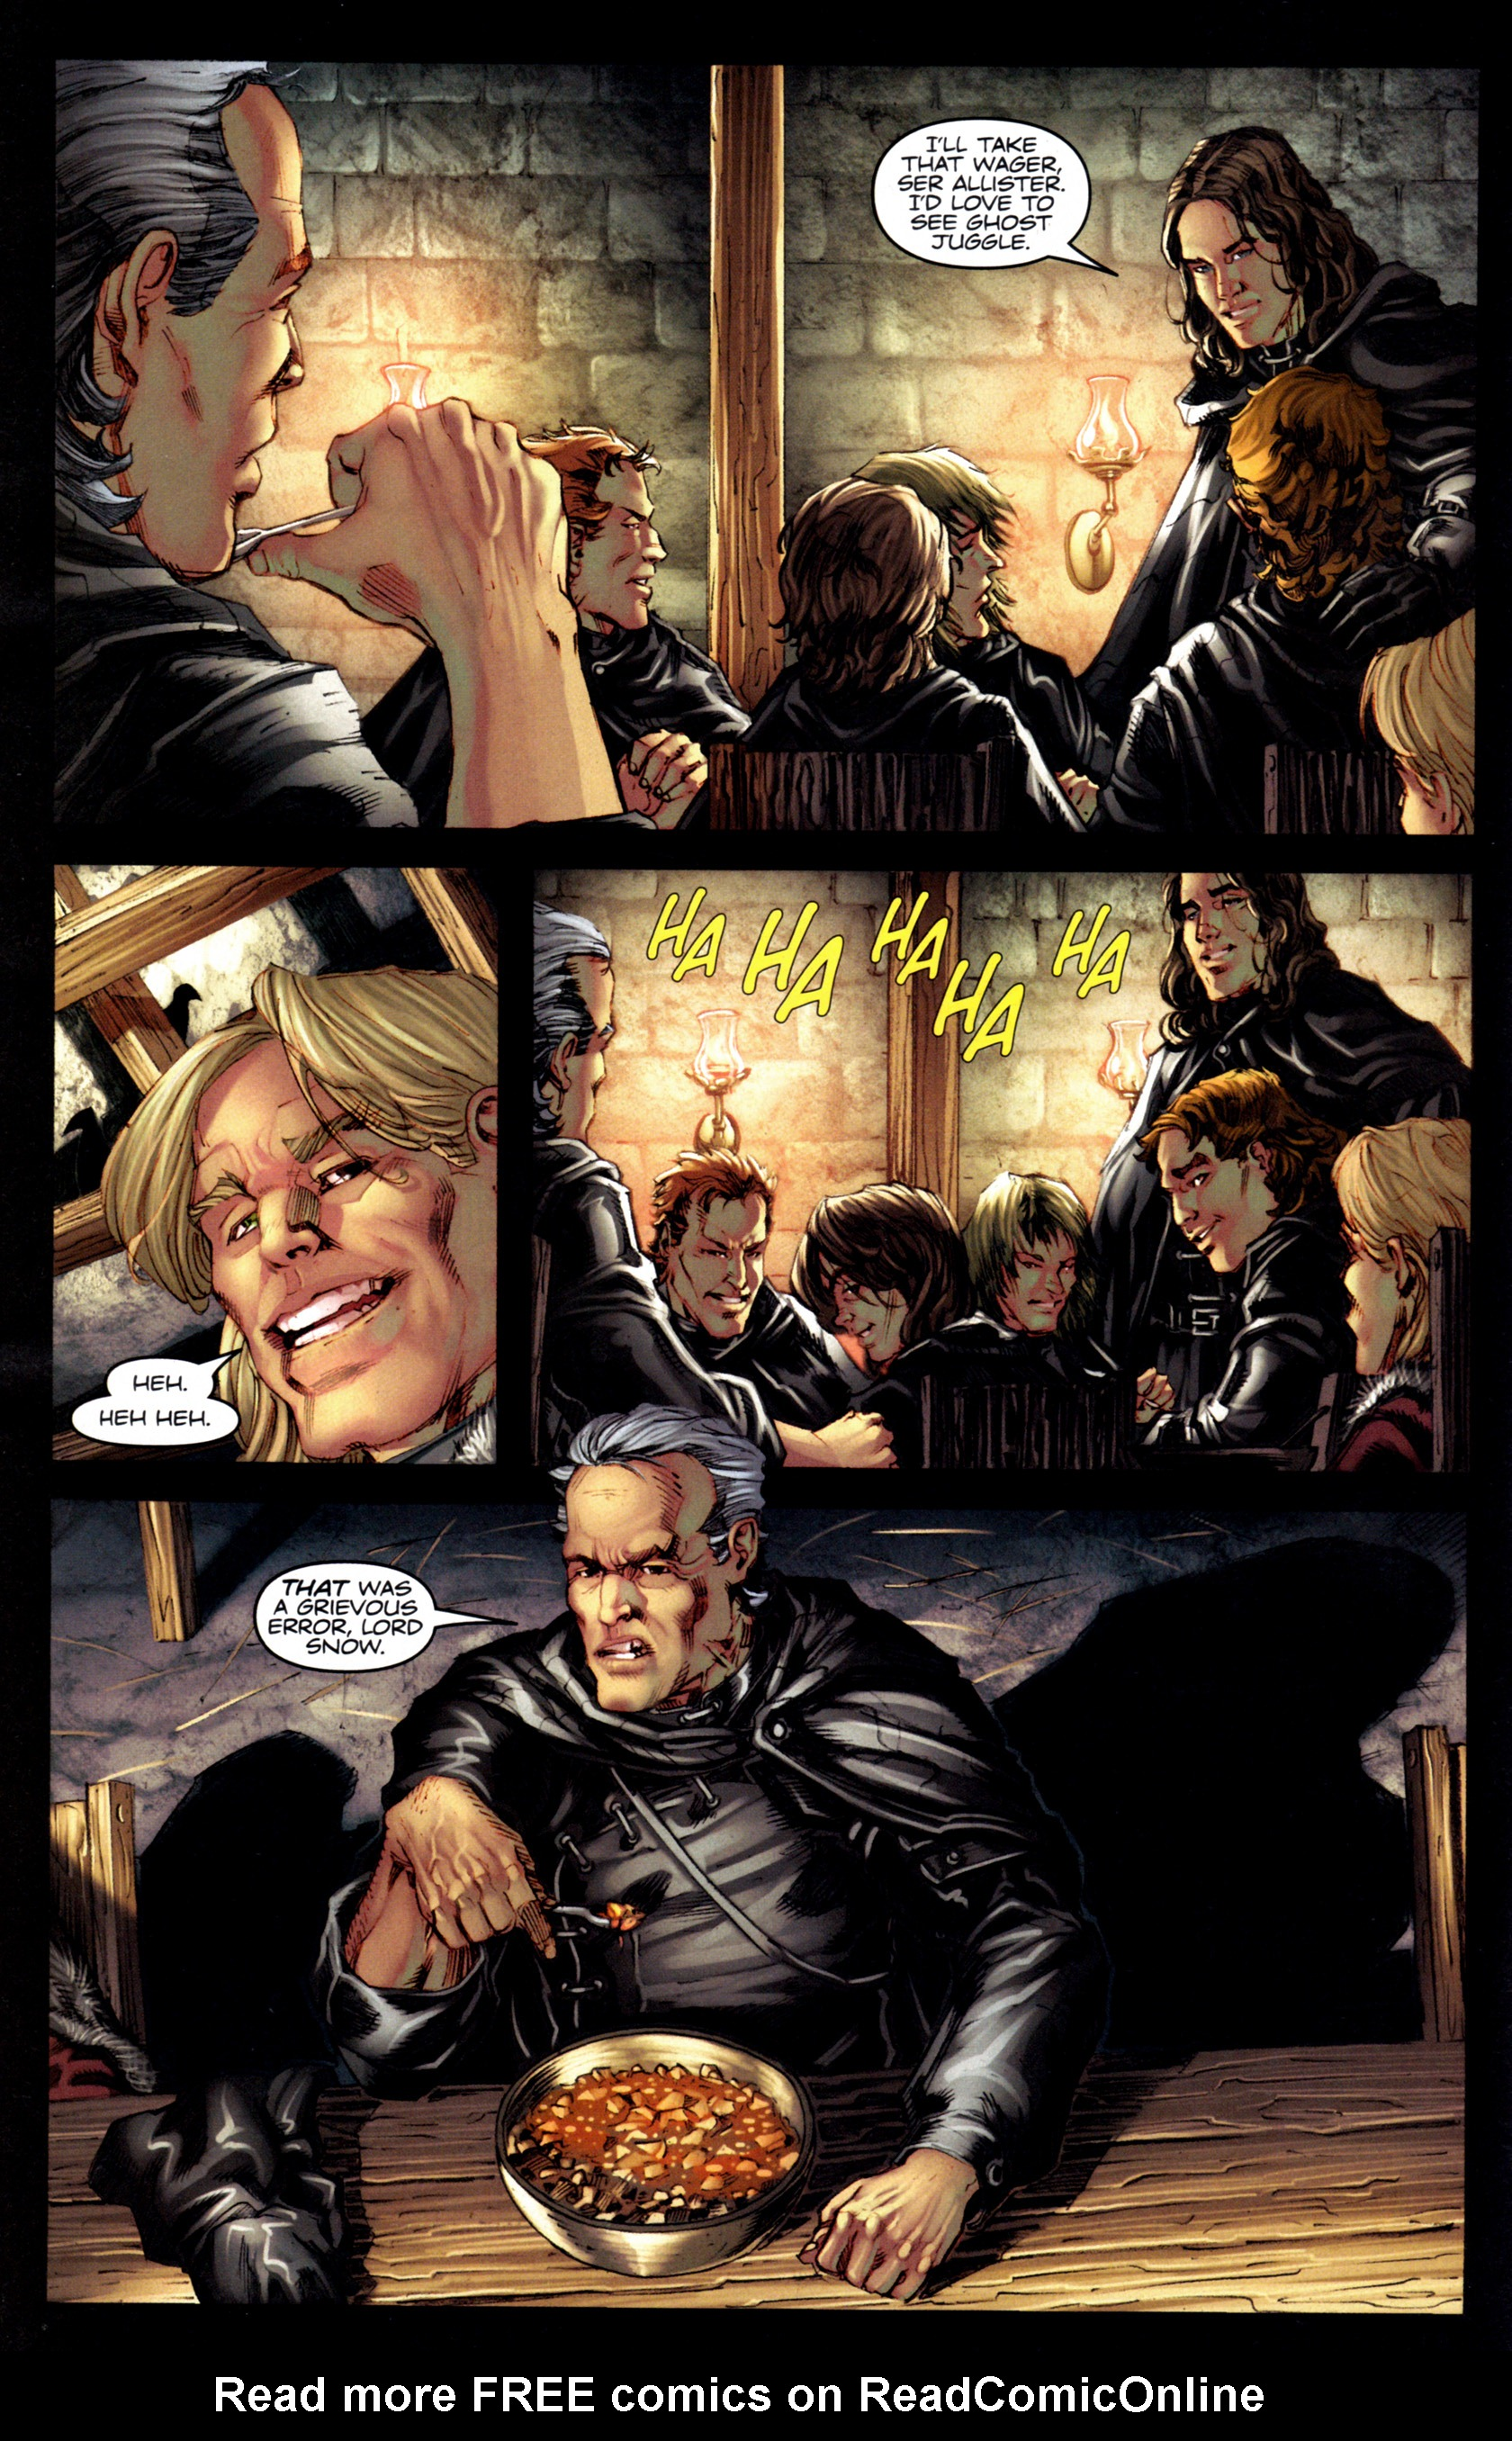 Read online A Game Of Thrones comic -  Issue #6 - 12